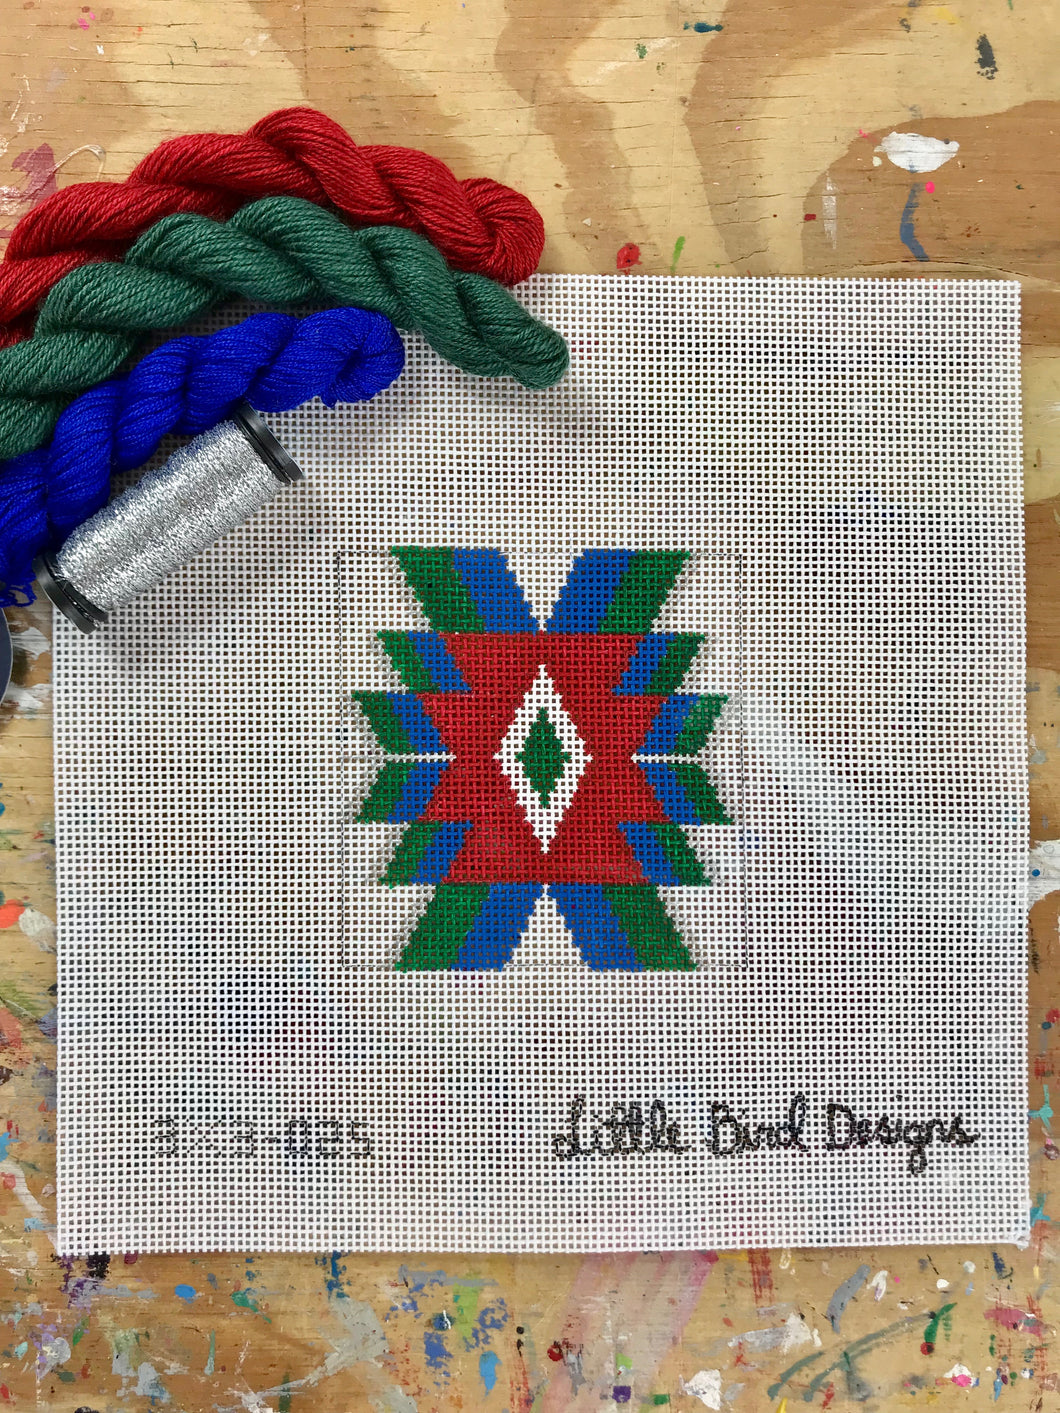 3x3-025 Blue, green, red Mexican geometric 4